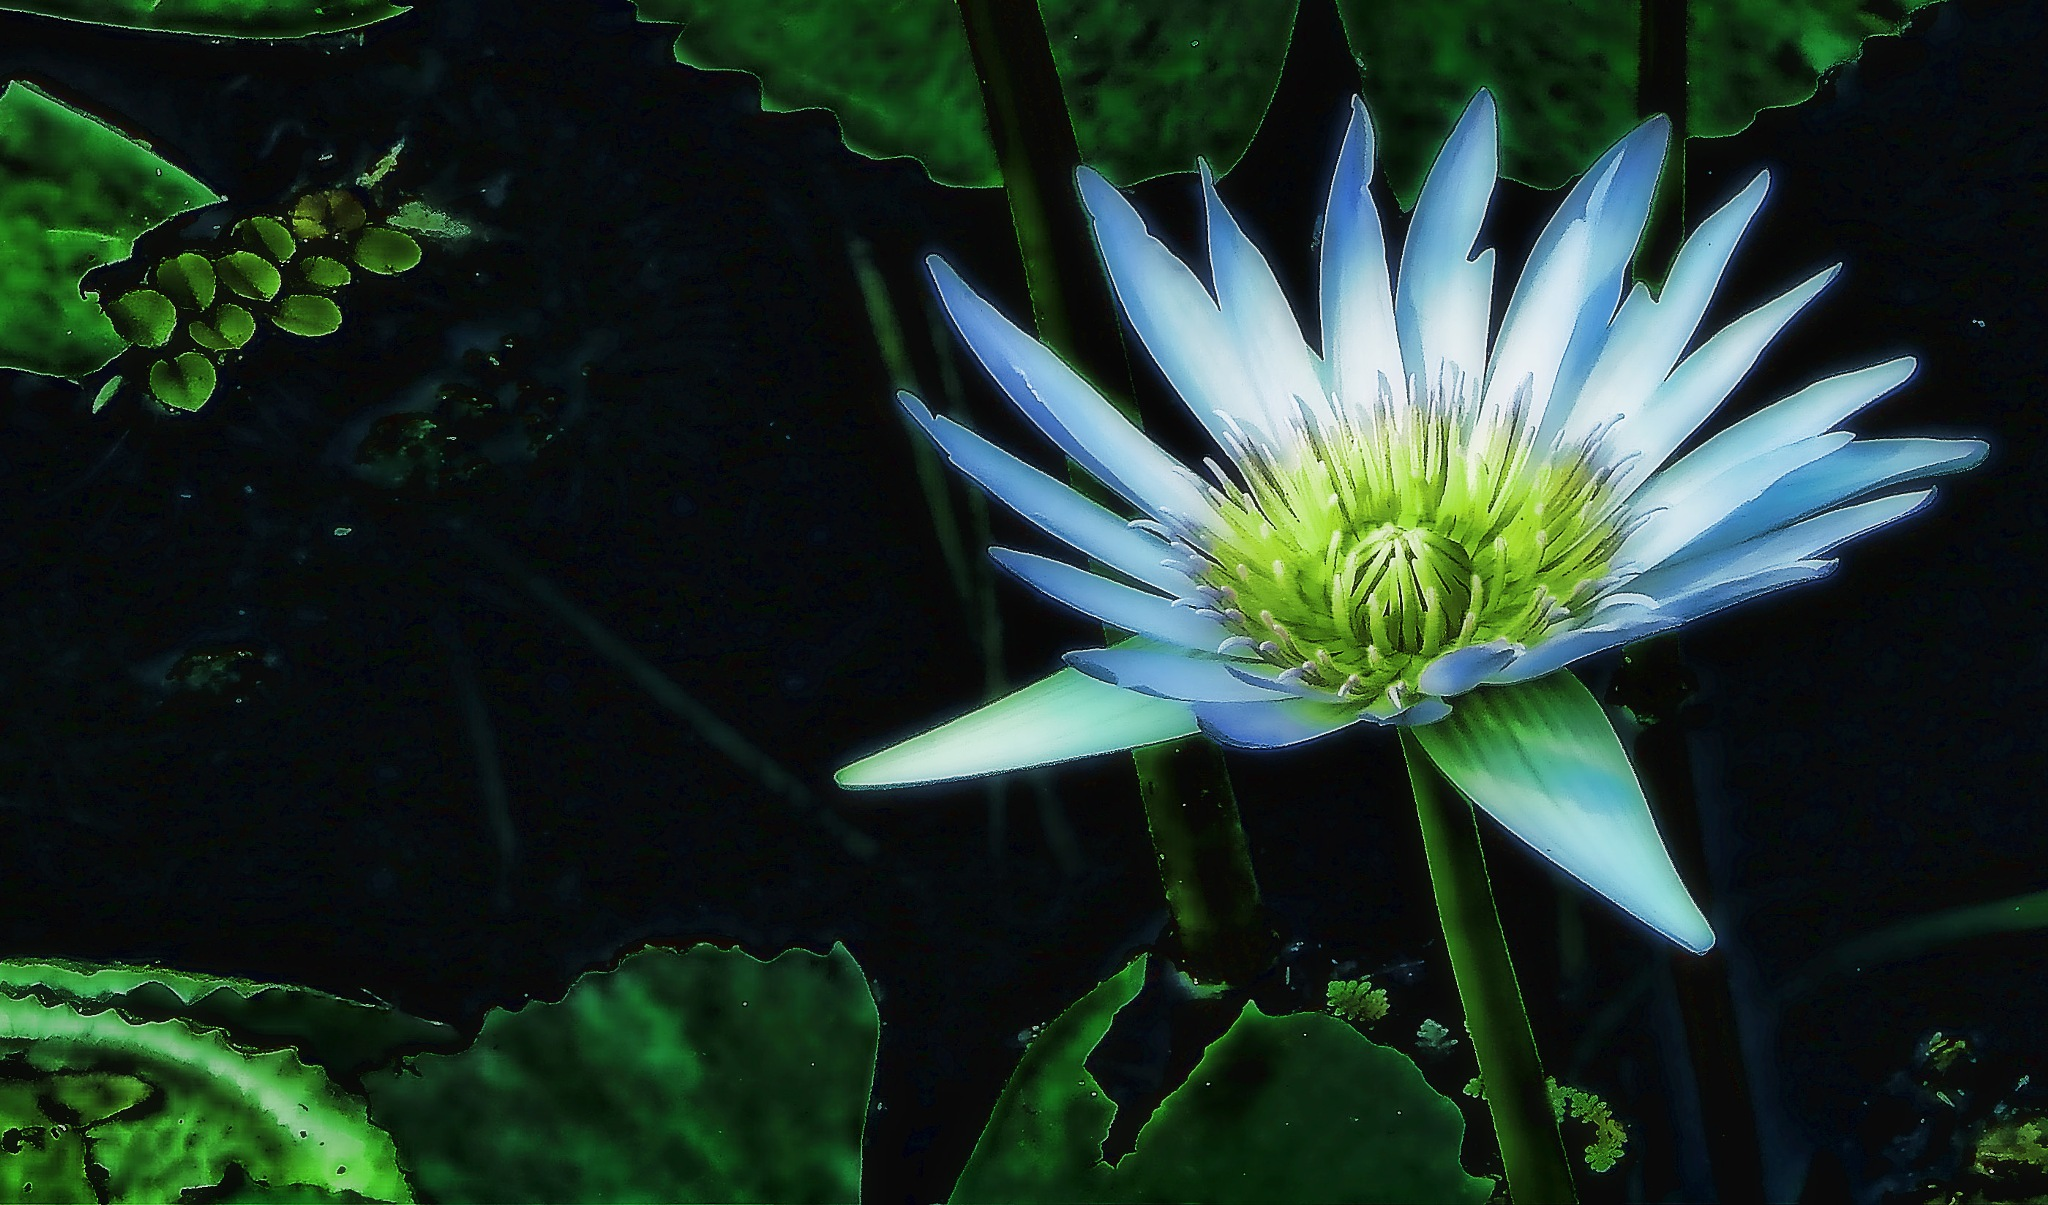 Lotus by DanicaD